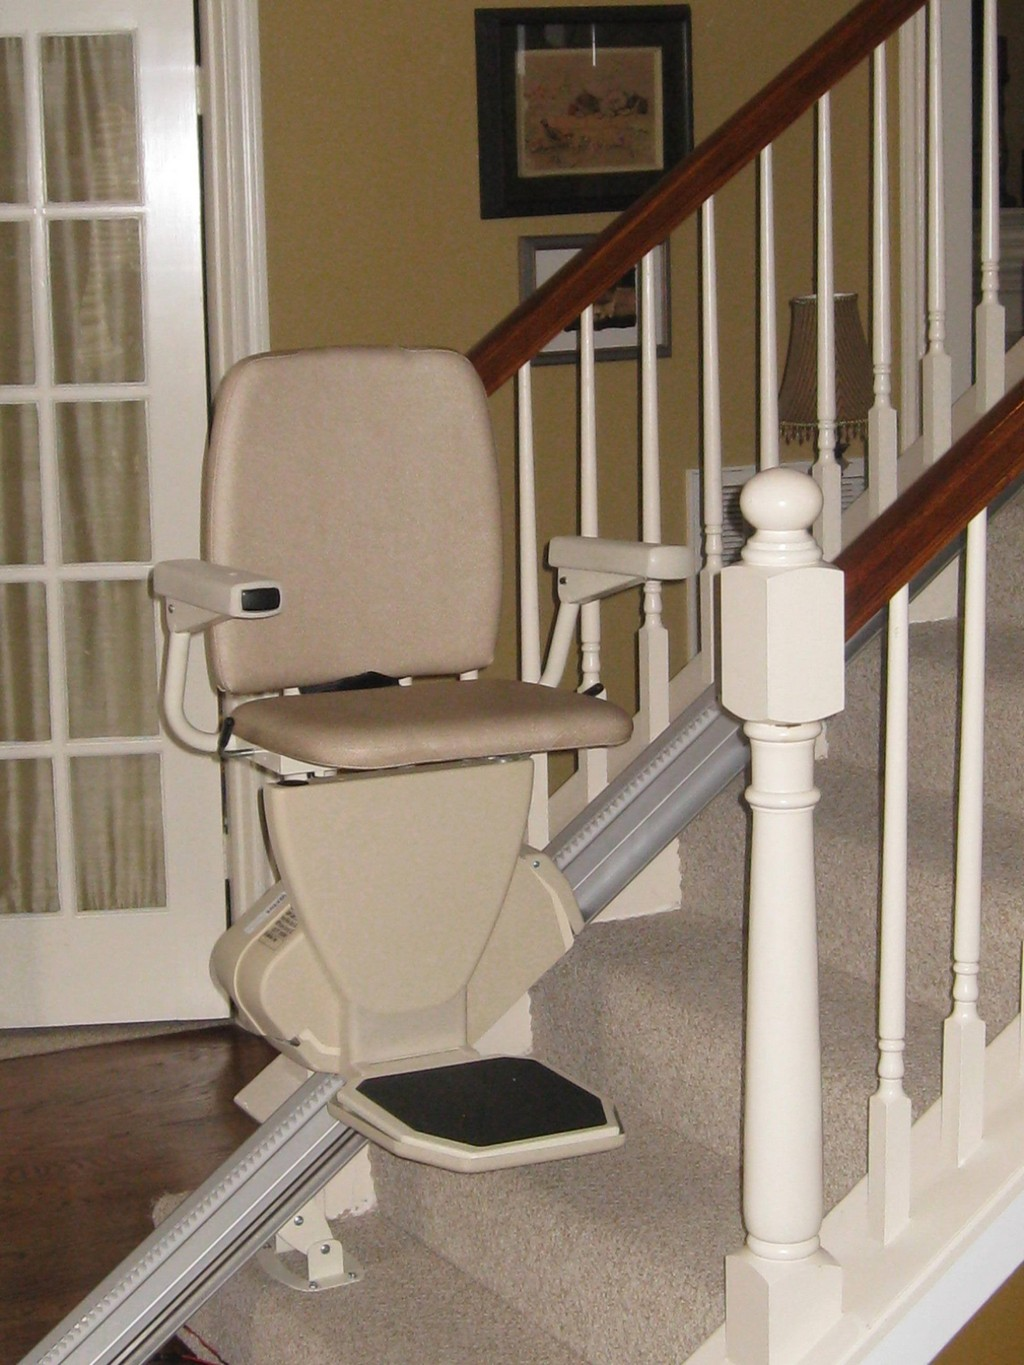 Wheelchair assistance stair chair lift for Motorized stair chair lift